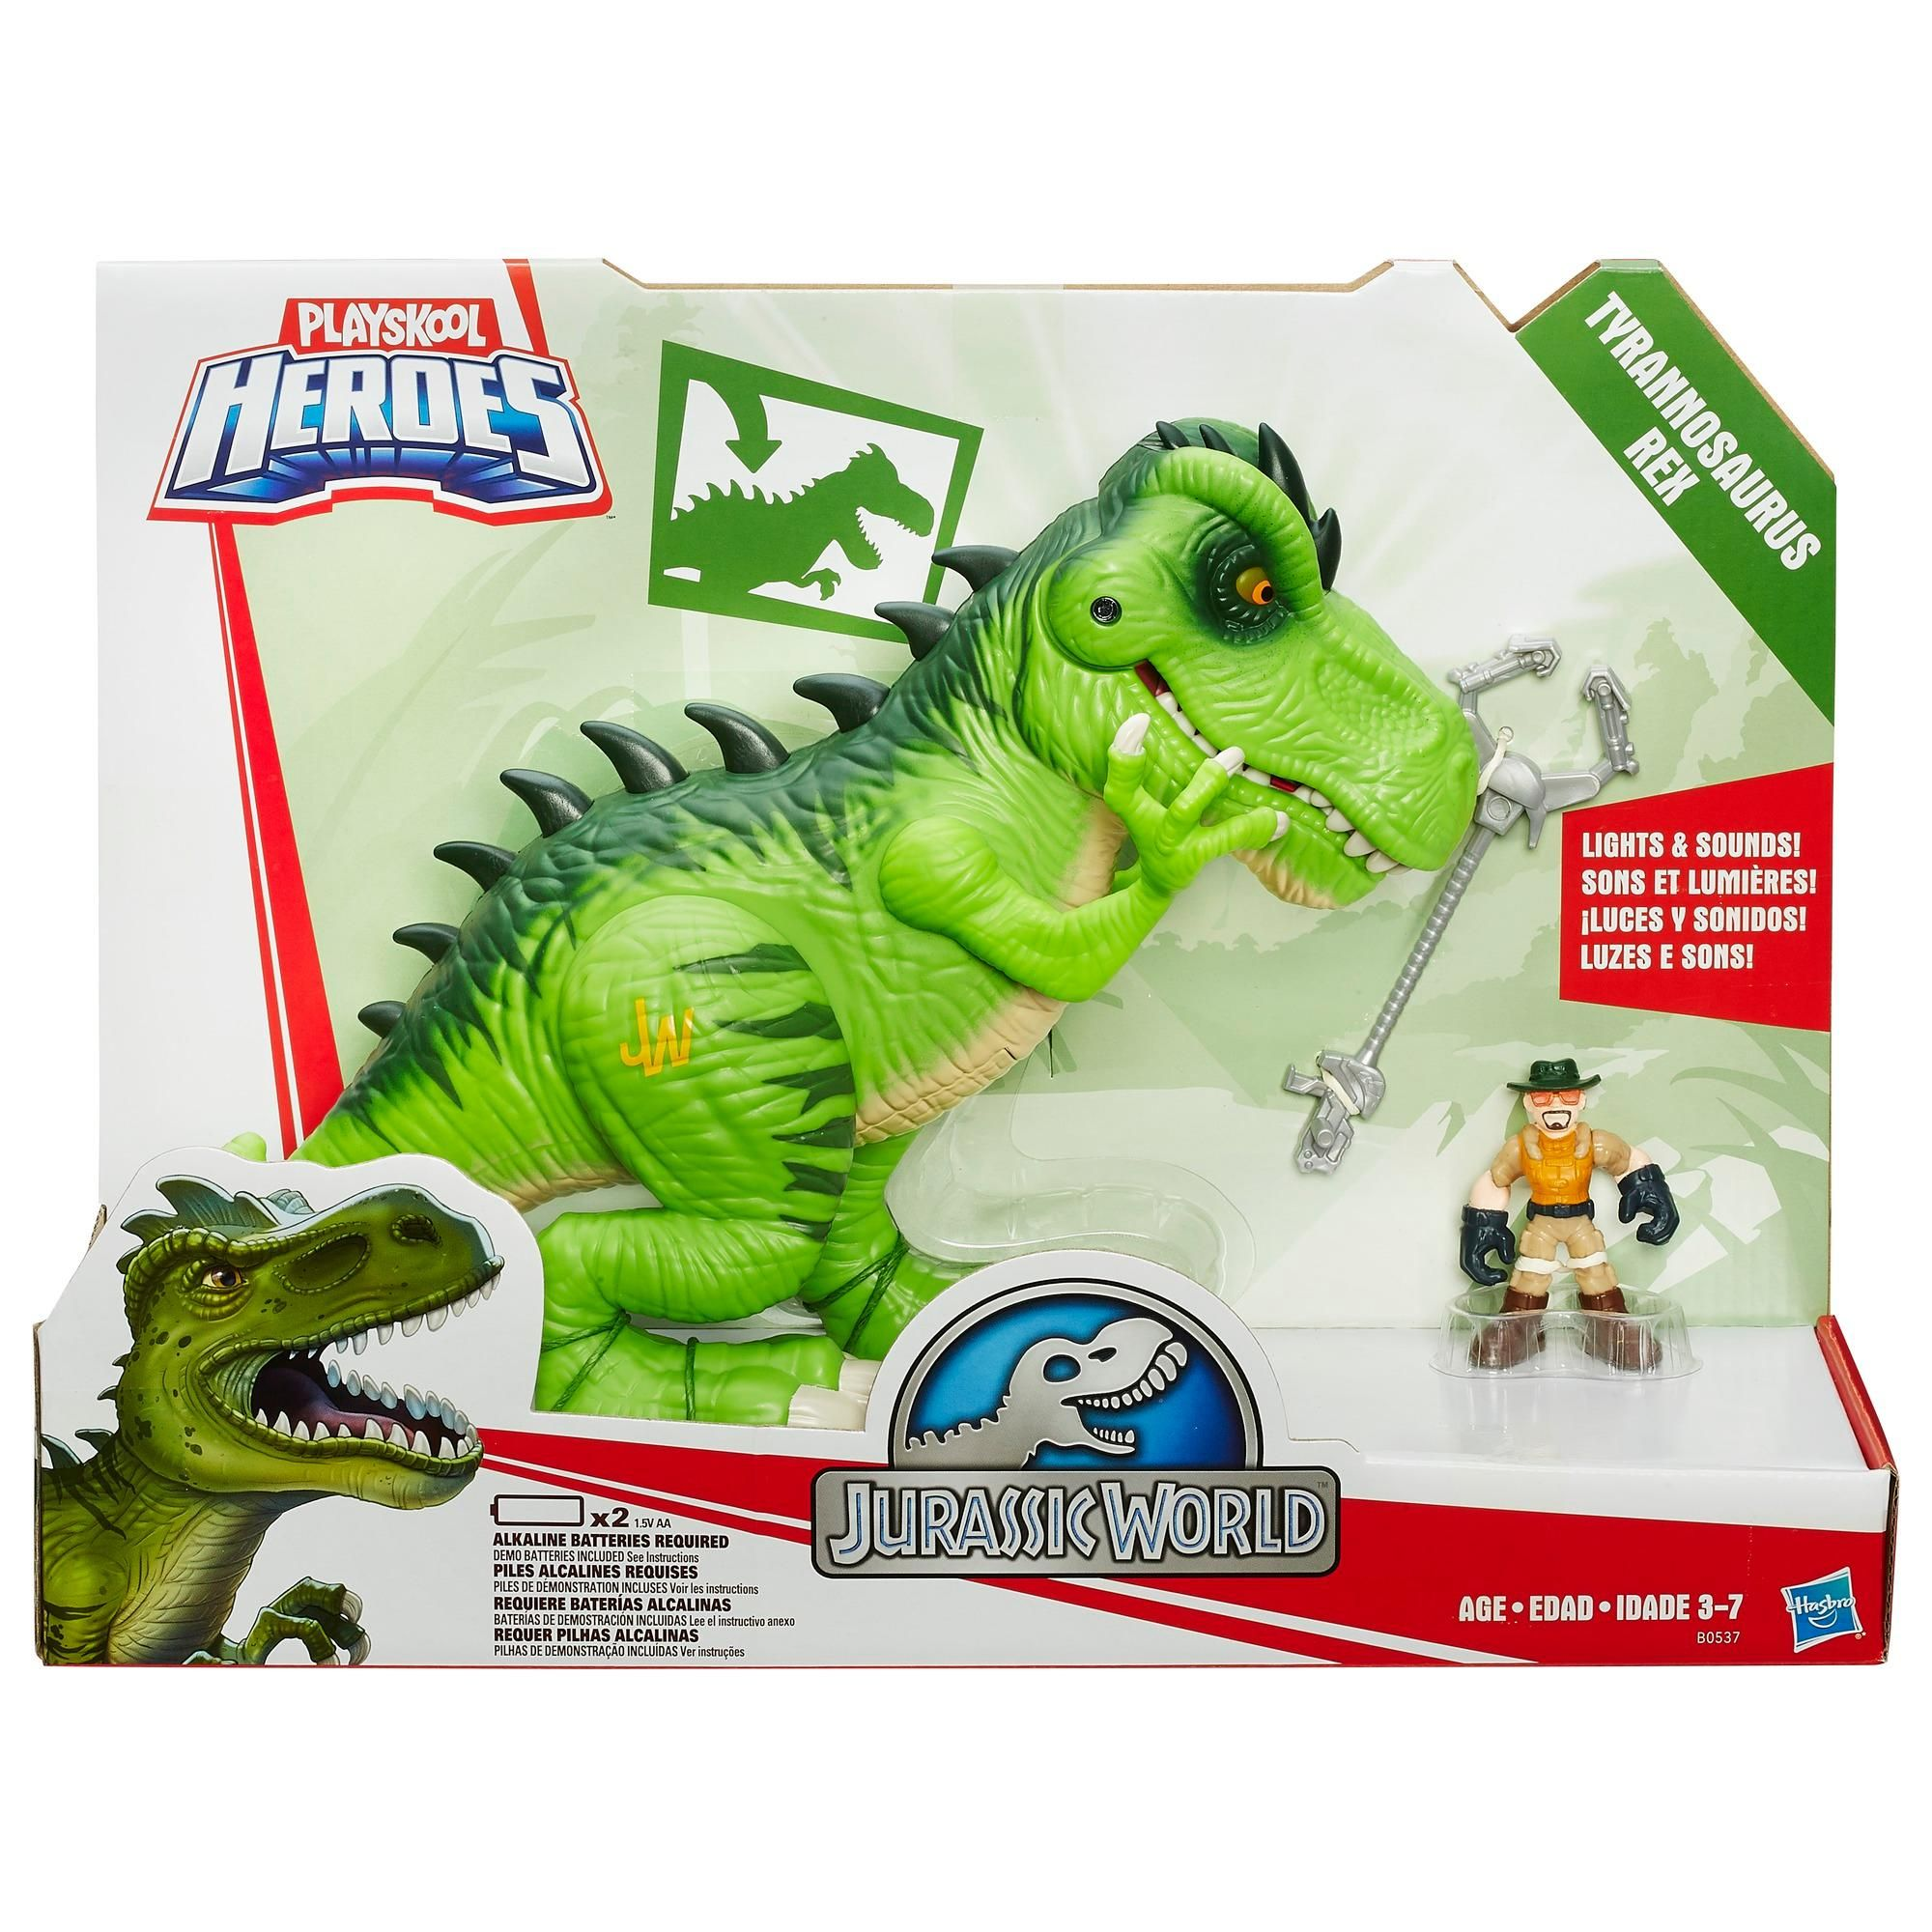 Amazon Com Playskool Heroes Jurassic World T Rex Figure Discontinued By Manufacturer Toys Gam In 2020 Jurassic World T Rex Jurassic World Jurassic World Dinosaurs